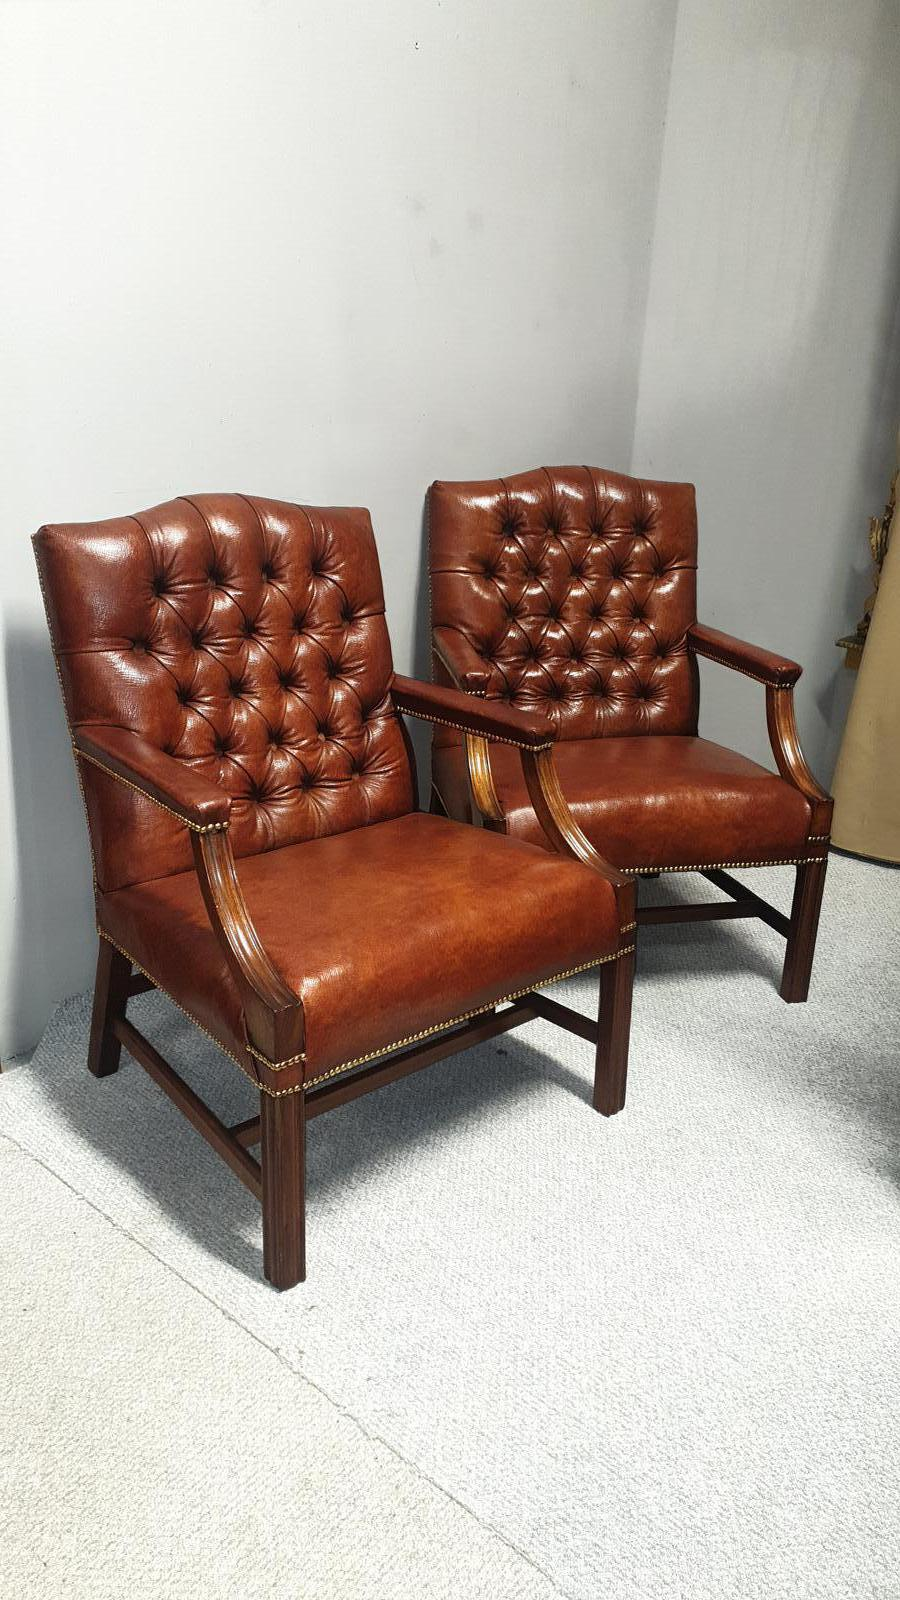 Outstanding Pair of Leather Gainsborough Library Chairs (1 of 1)